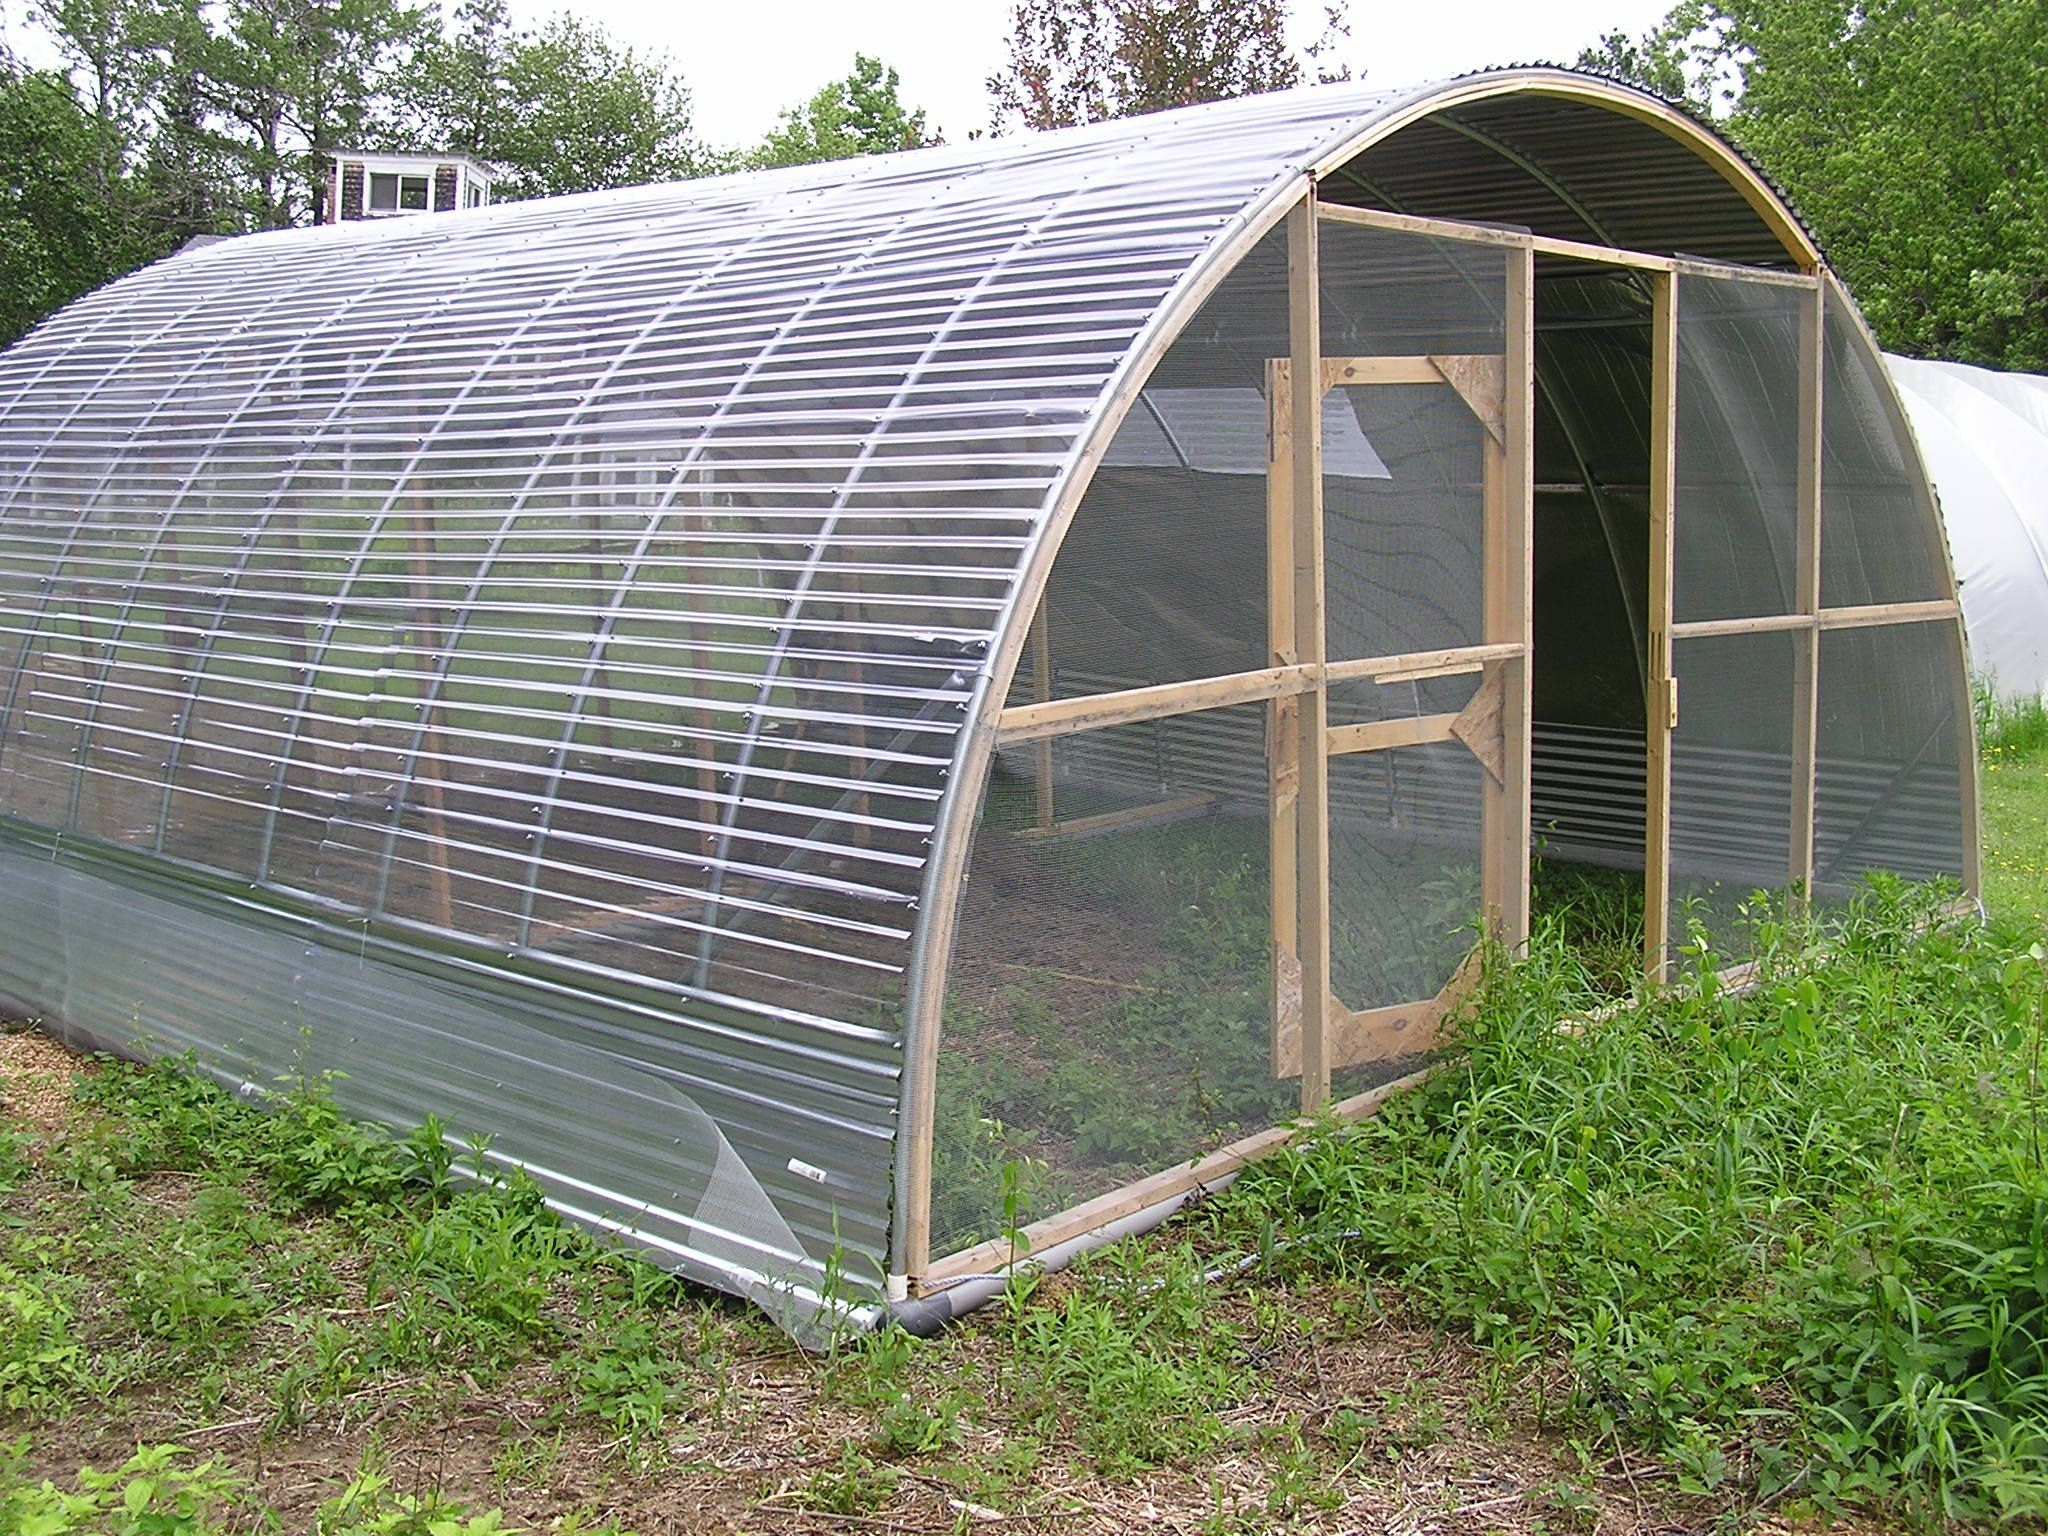 Hoop house chicken coop ideas pinterest coops for Pvc chicken tractor plans